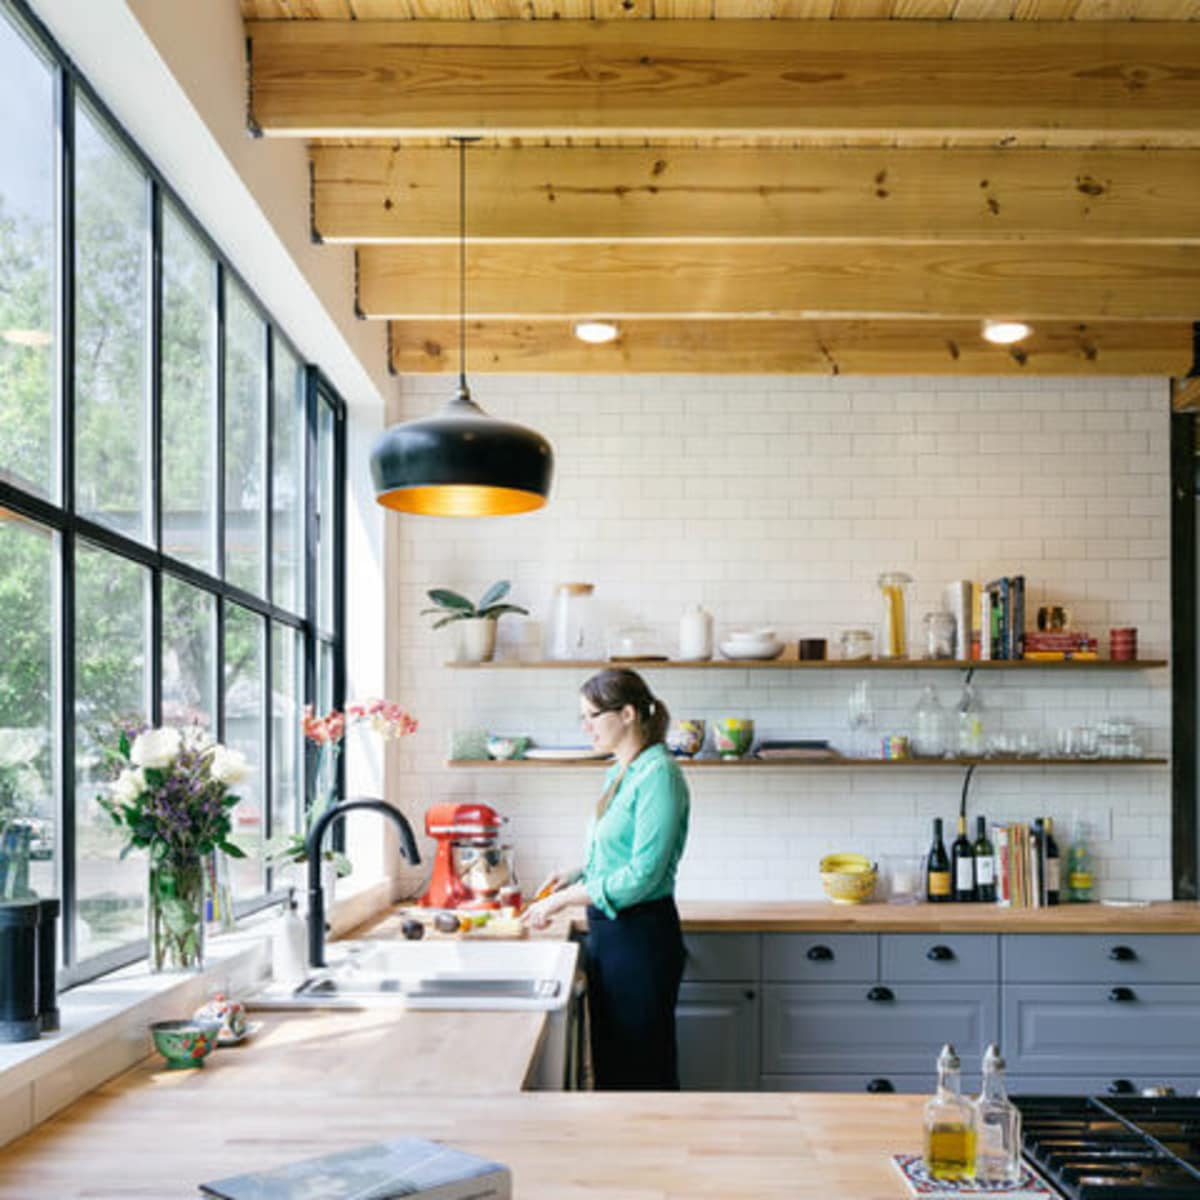 Austin home house Houzz DIY modern Texas farmhouse Garden St kitchen